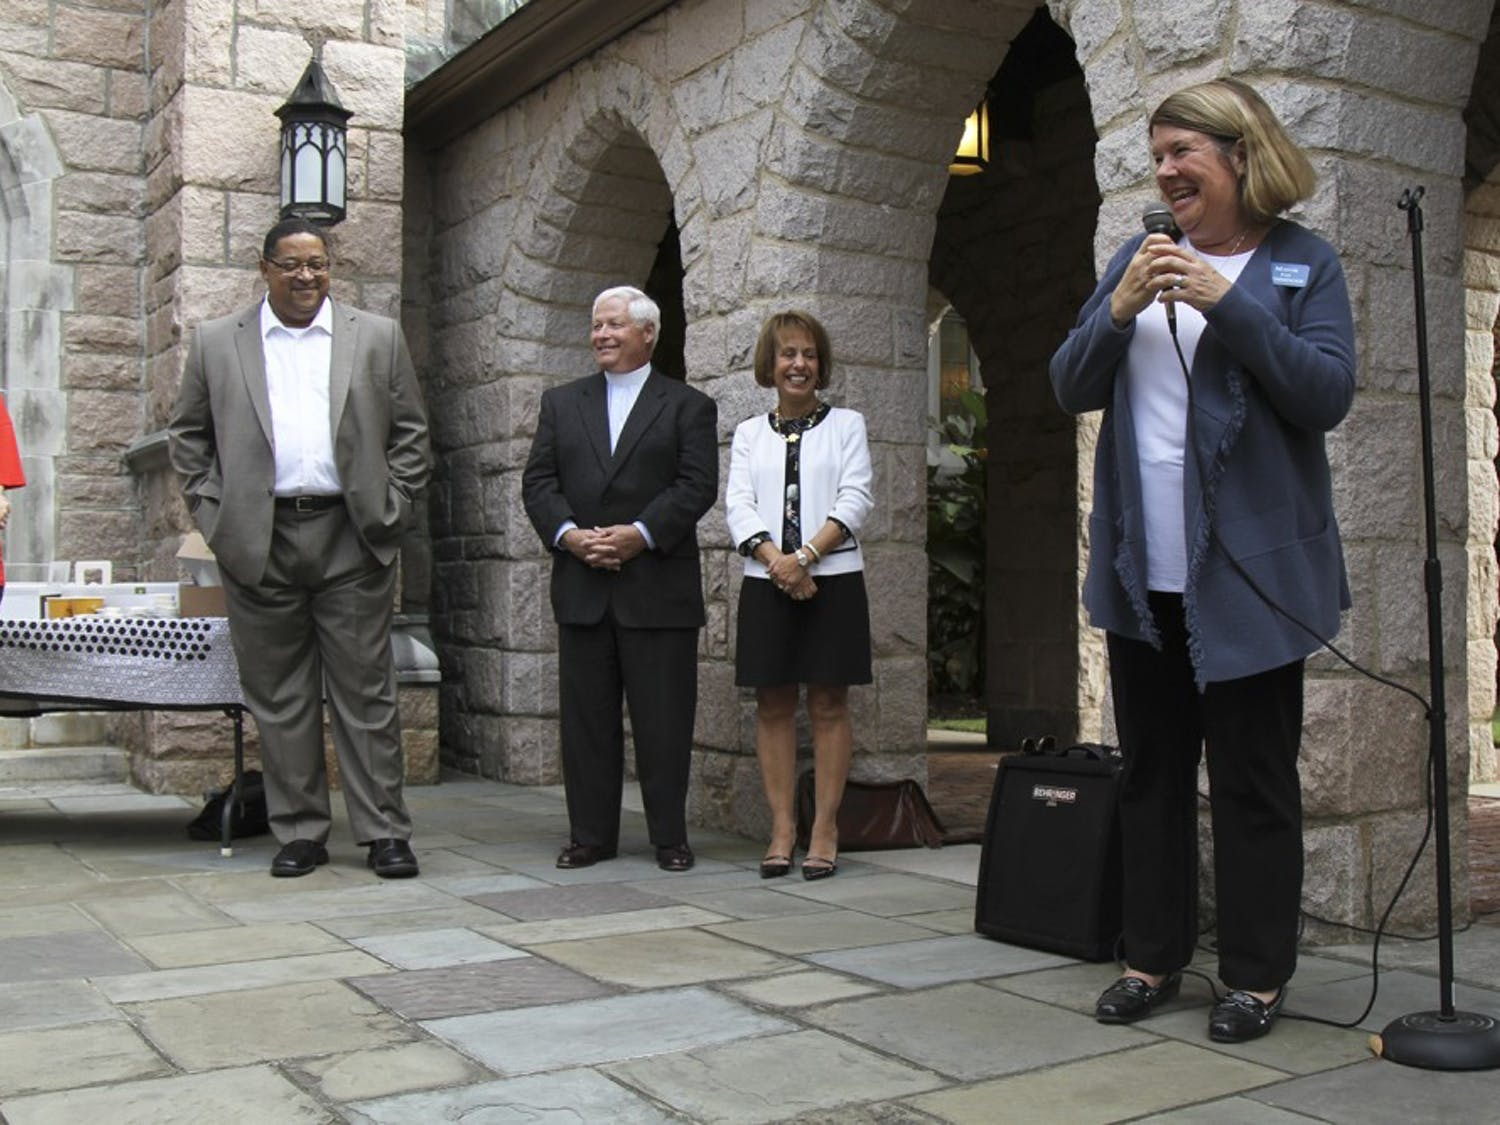 Chapel Hill Mayor Pam Hemminger (right) made statements at the Chapel of the Cross before she casted her vote Thursday.